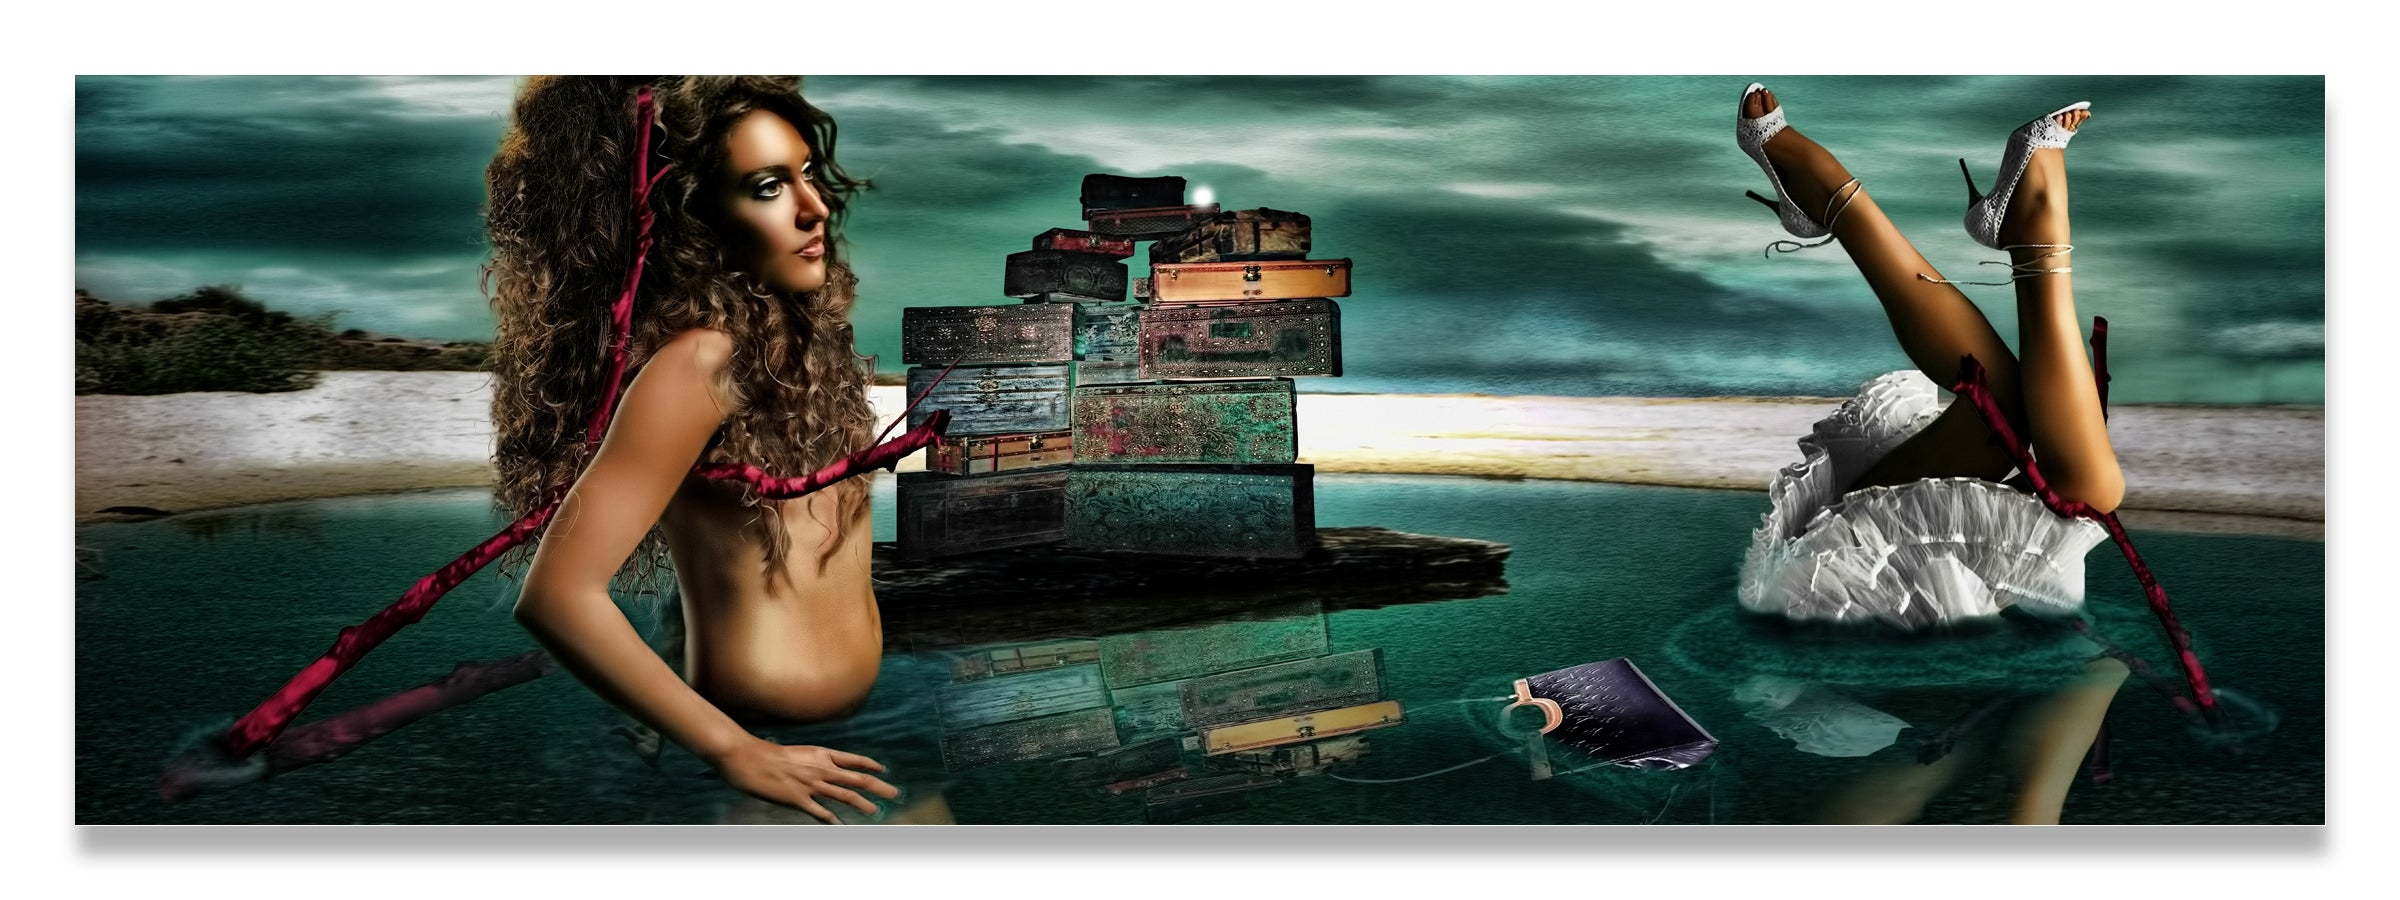 Louii Vuitton vs Salvador Dali- Disjointed Woman Floating in Water with Red Crutches and Surreal Clouds-Fine Art Print